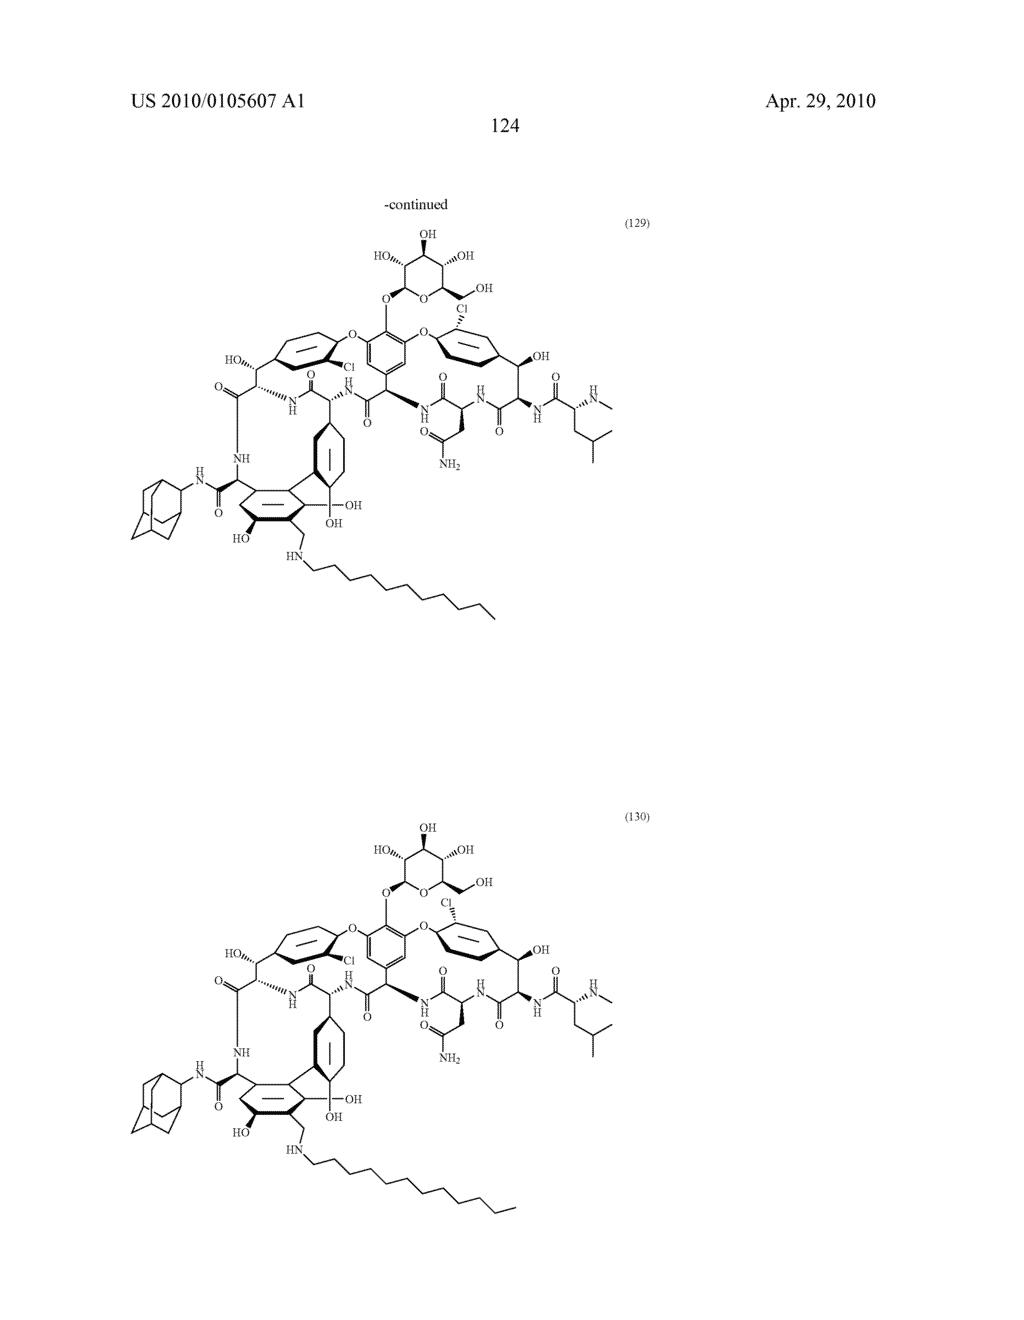 NOVEL SEMI-SYNTHETIC GLYCOPEPTIDES AS ANTIBACTERIAL AGENTS - diagram, schematic, and image 124